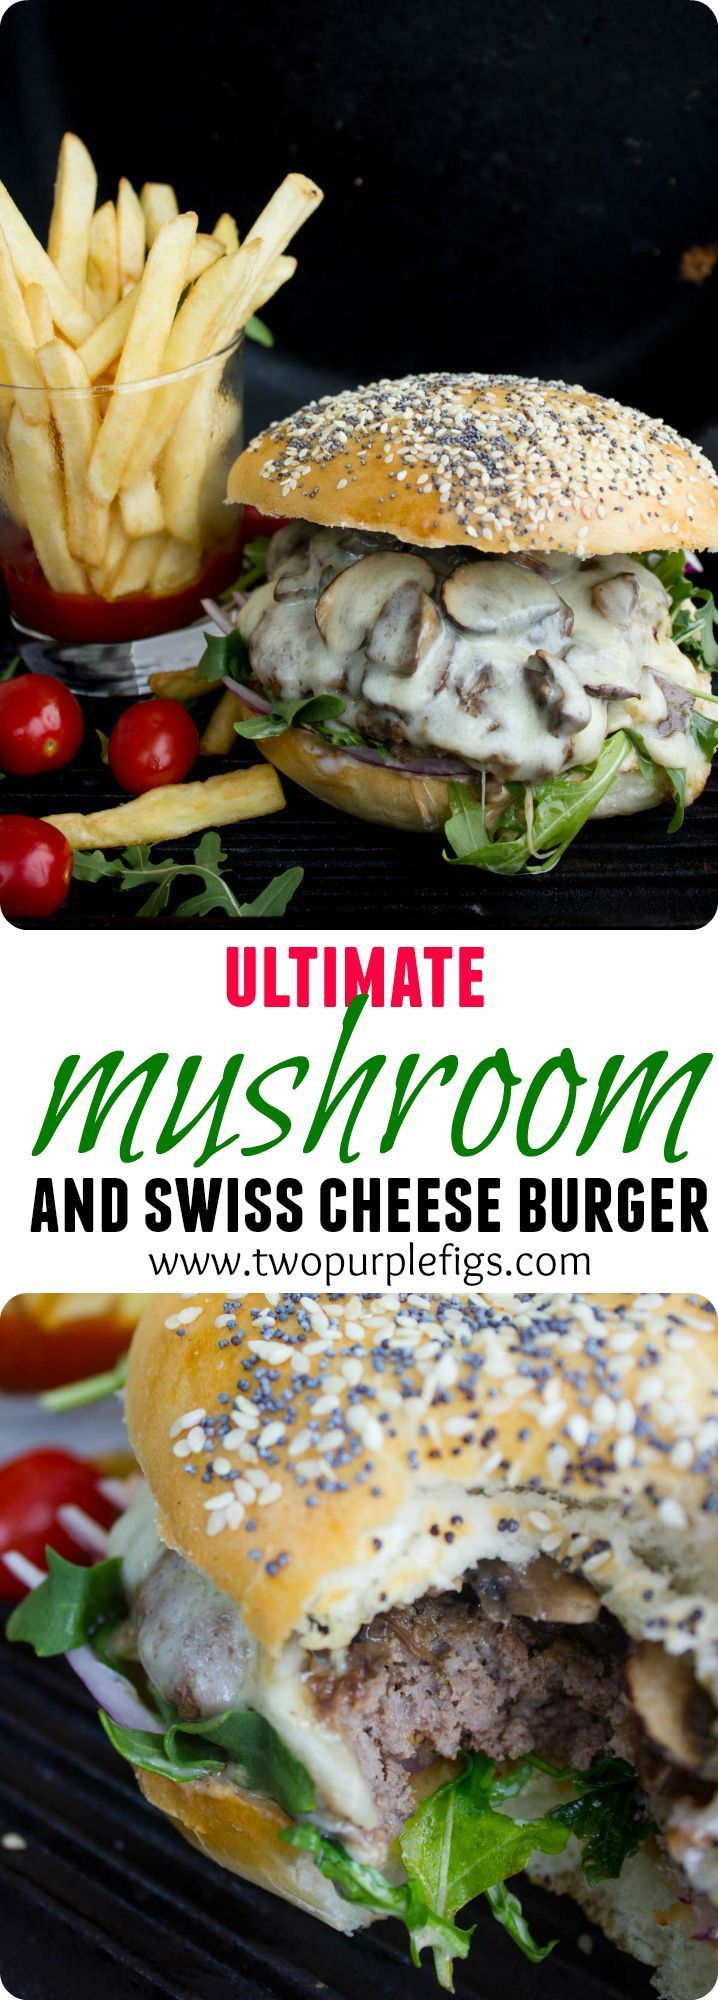 Mushroom Swiss Cheese Burgers--Meet the ULTIMATE burgers, crowd pleaser, simple, easy, straight forward recipe in 20 mins! Make it once and you'll keep going back! http://www.twopurplefigs.com